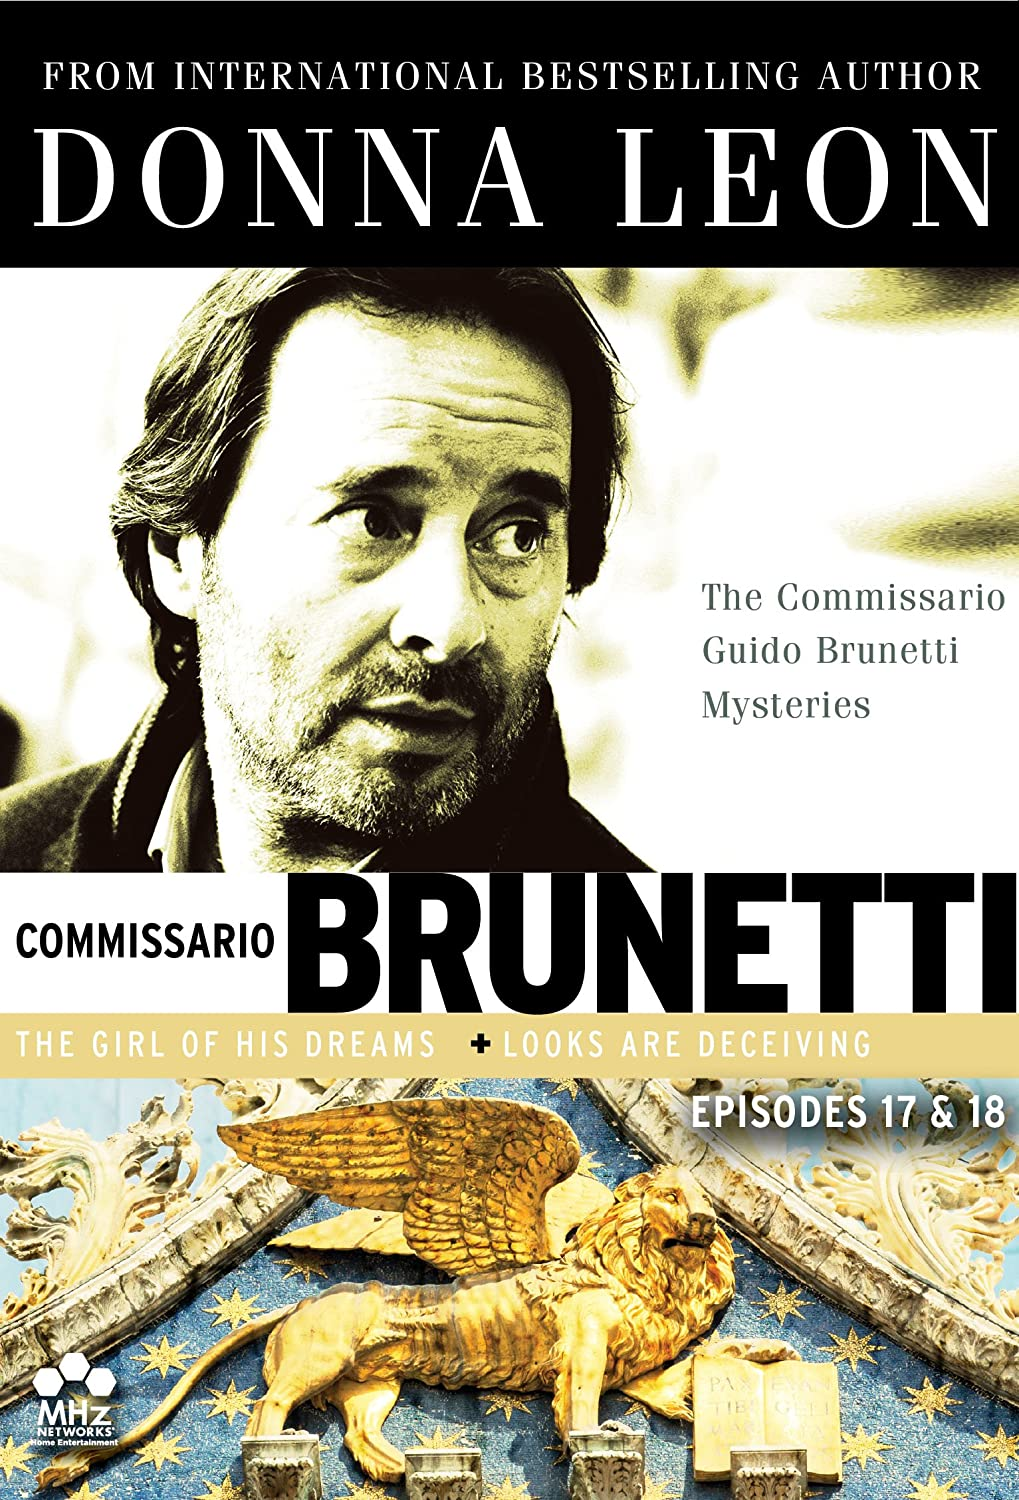 Commissario Guido Brunetti Mysteries - Episodes 17 & 18